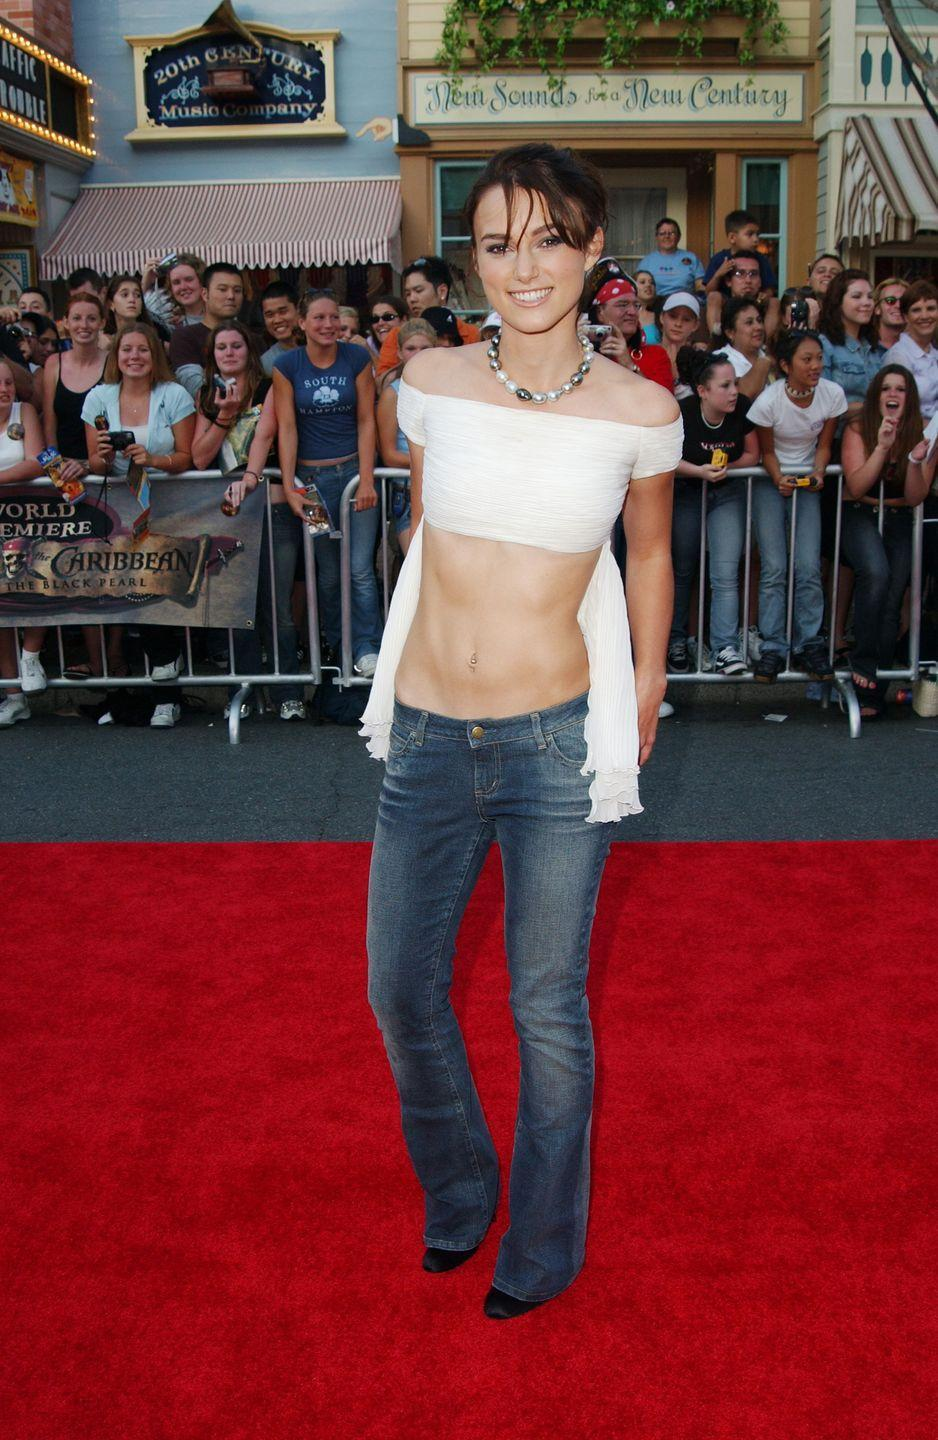 <p>At the premiere of the first <em>Pirates of the Caribbean</em> flick, Keira offered a twist on the classic backless top and went frontless instead. </p>